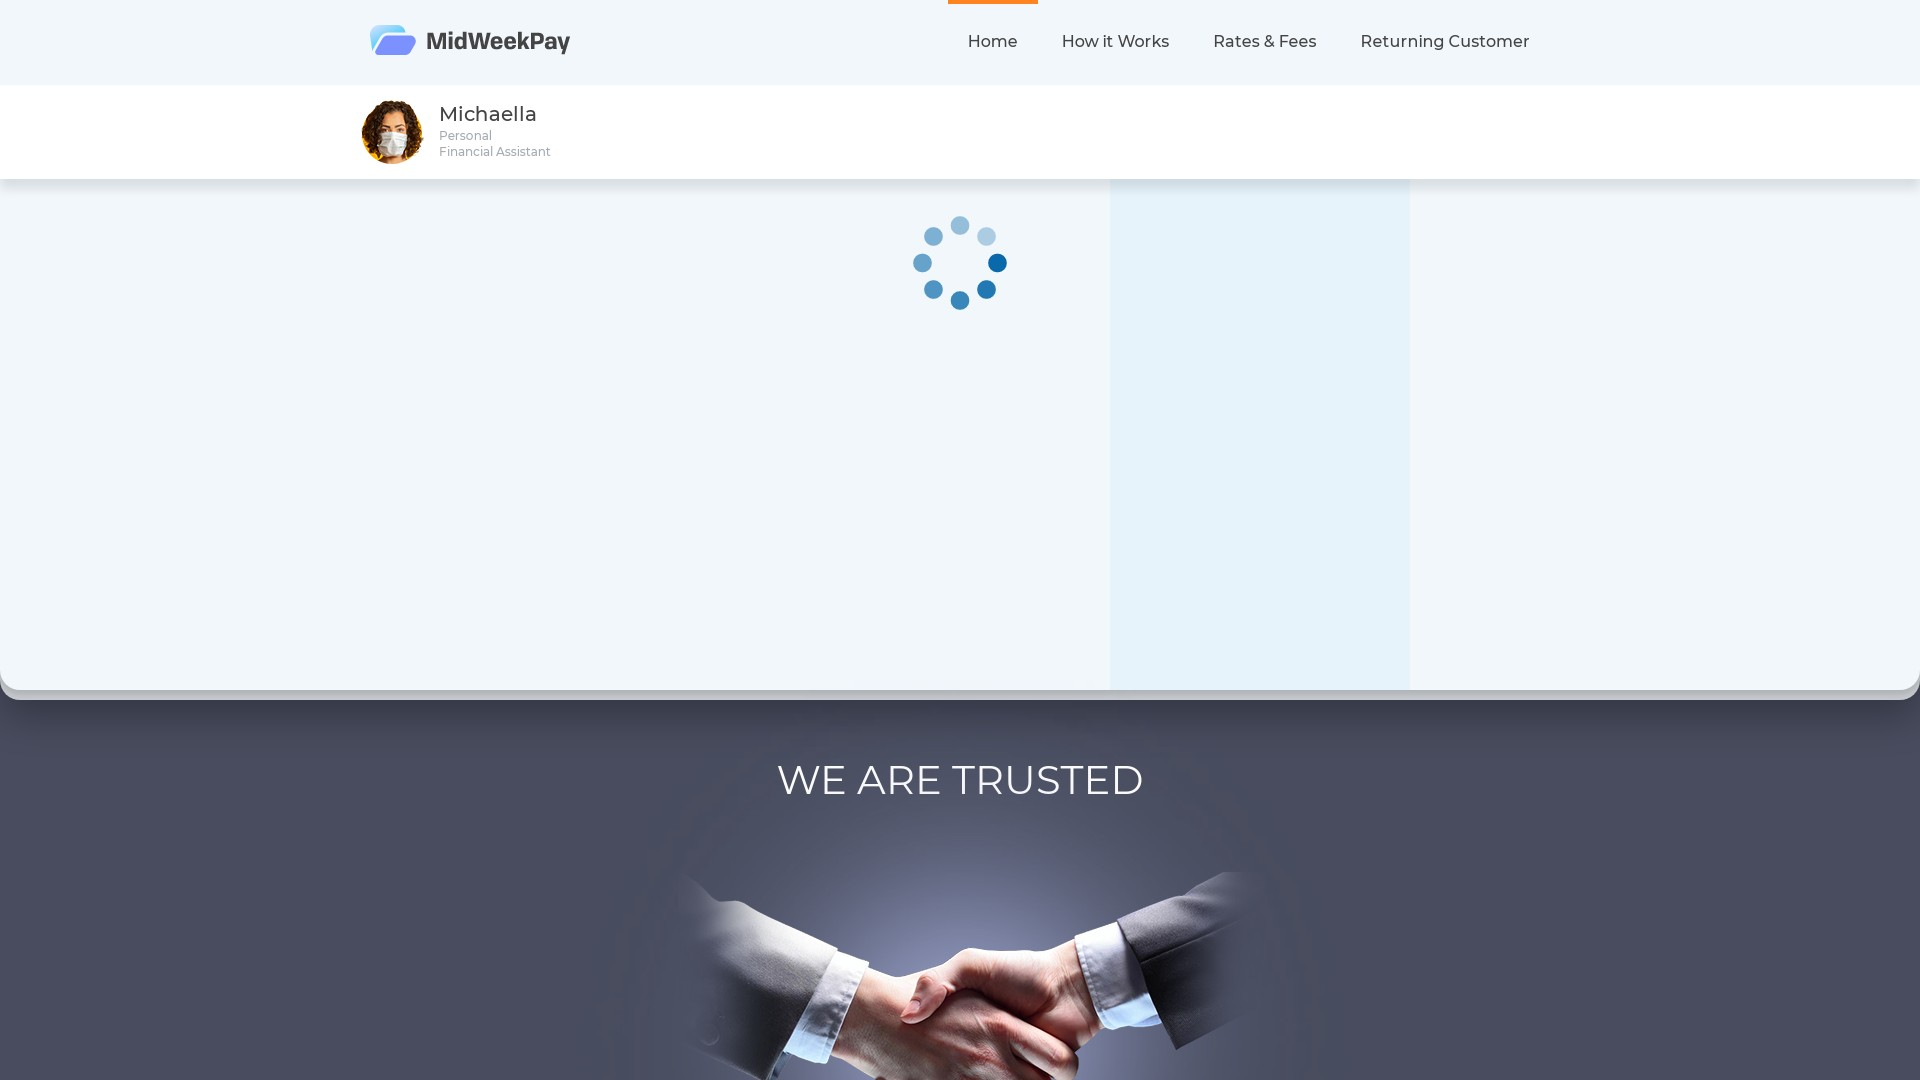 Is midweekpay a Scam? The Online Lending Website